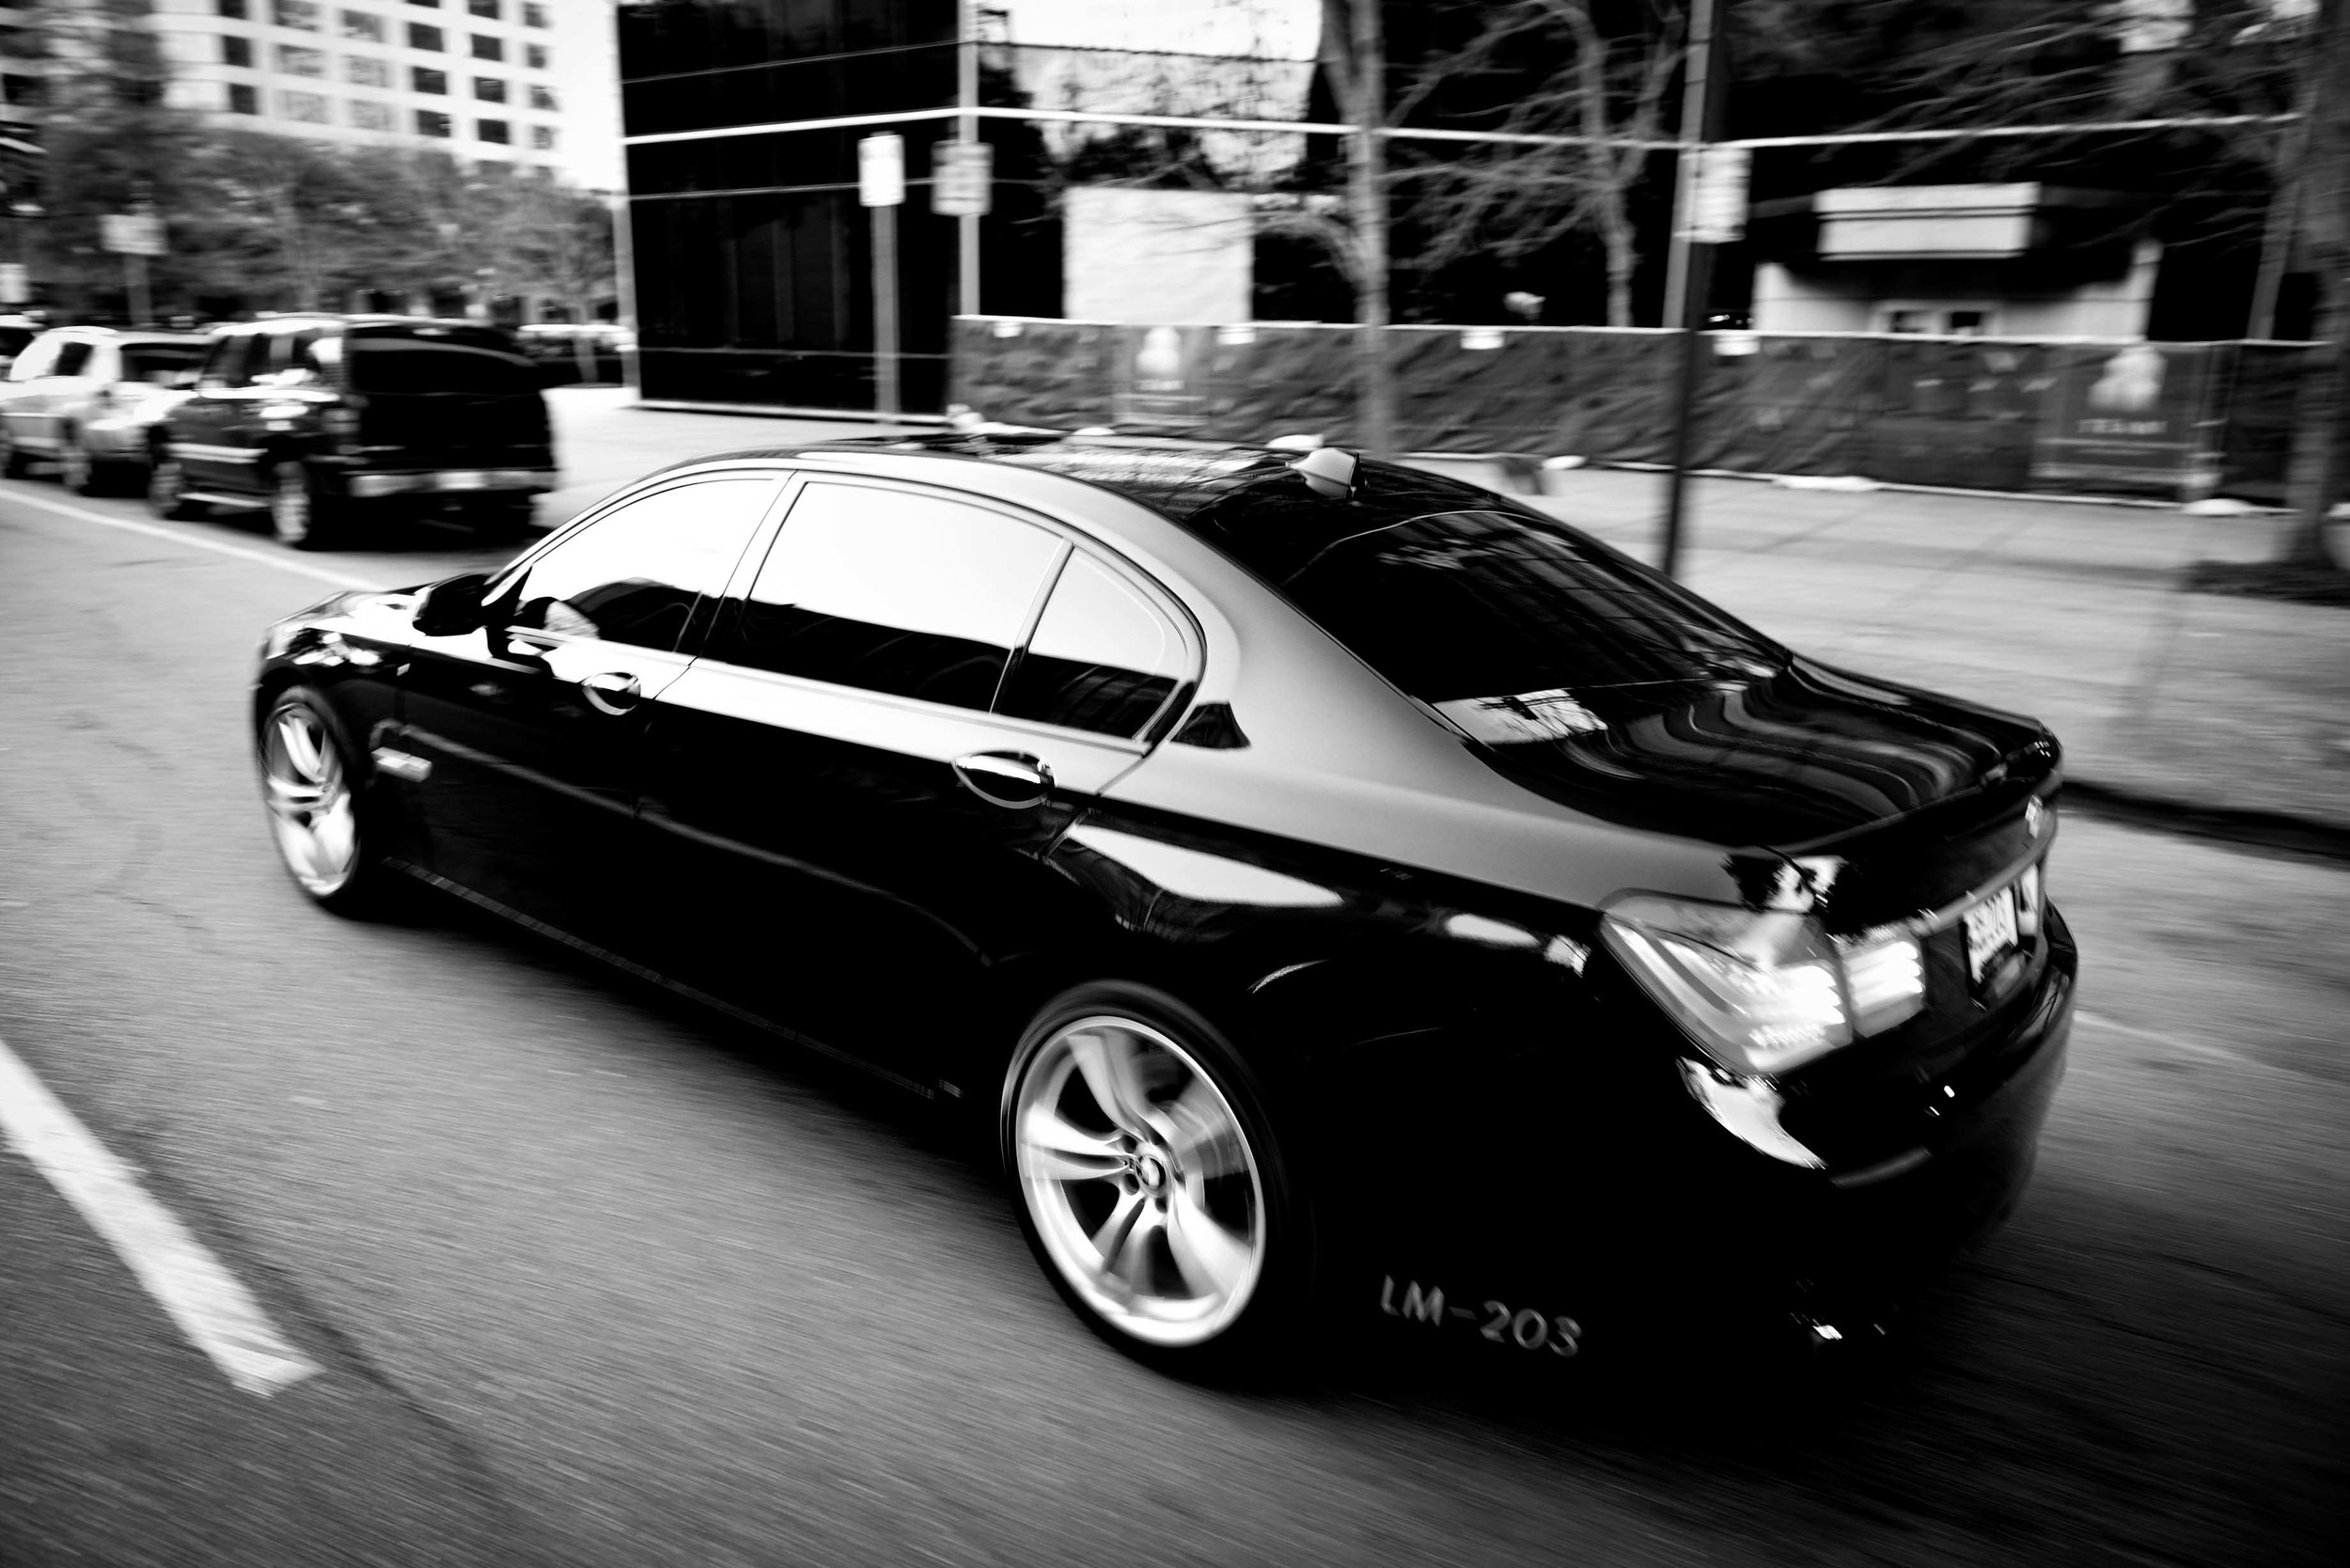 Car Service New Orleans_LCS_BMW (8 of 35).jpg